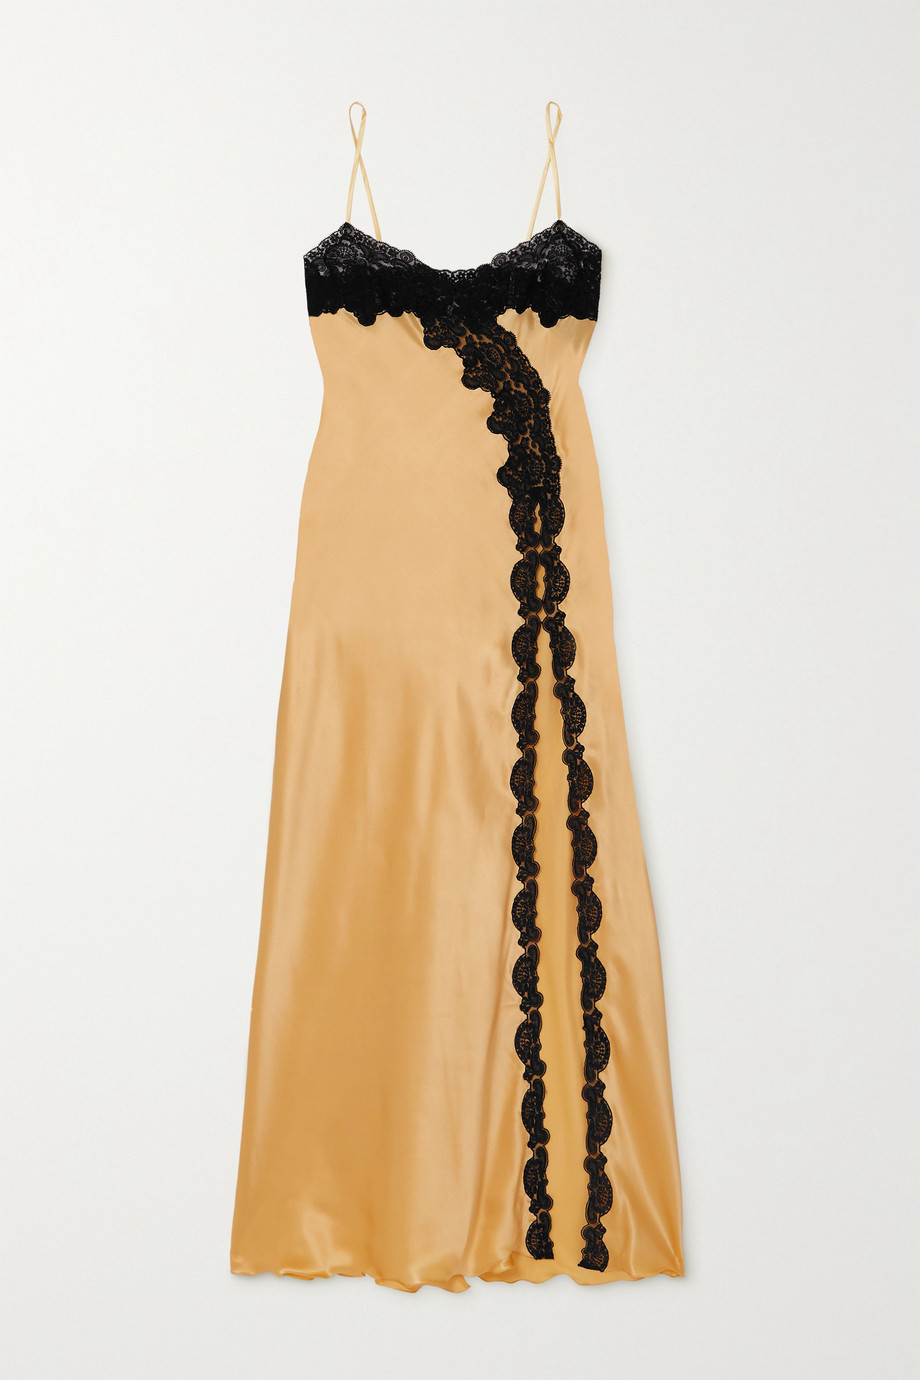 LORETTA CAPONI Nausica lace-trimmed silk-satin maxi dress